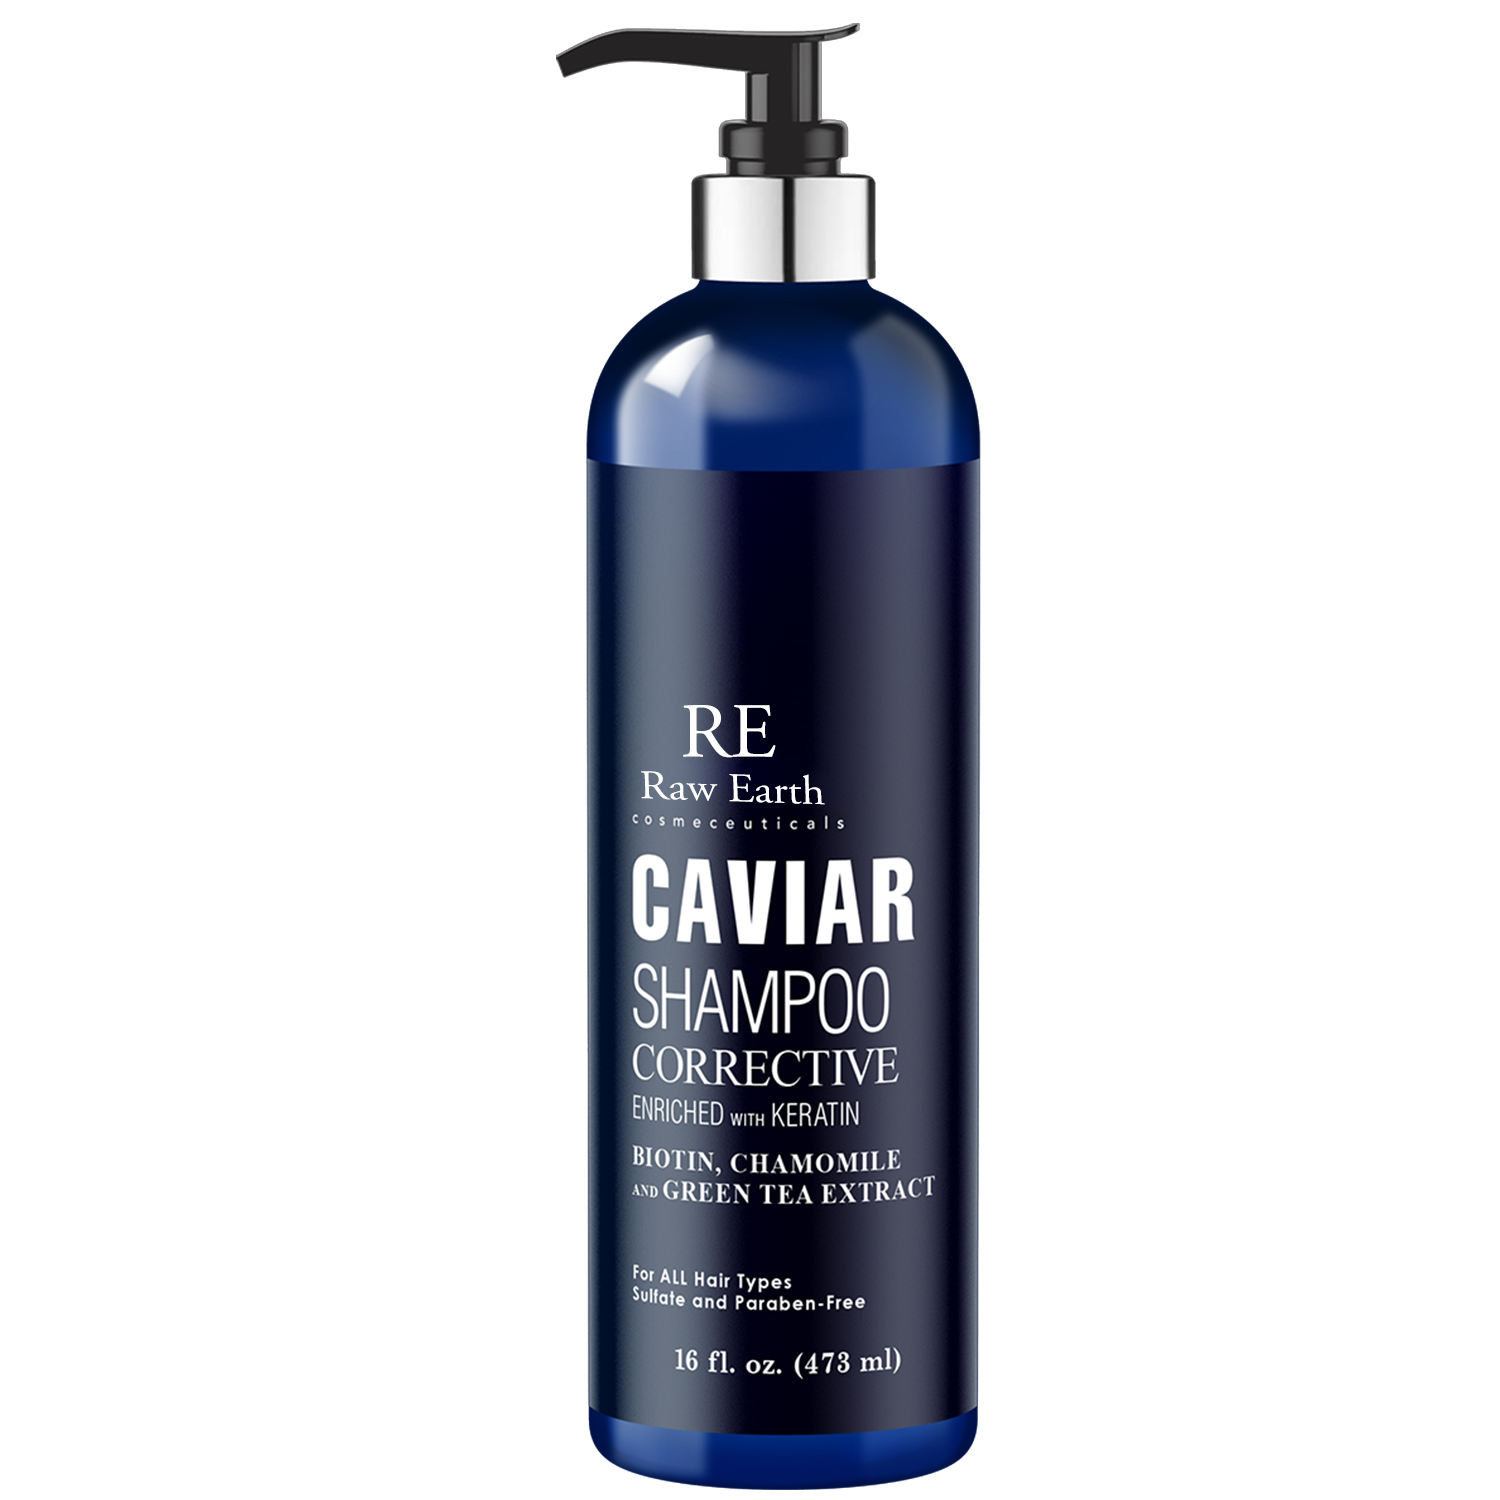 Rohe Erde angereichert mit Keratin Correct ive Caviar <span class=keywords><strong>Shampoo</strong></span>